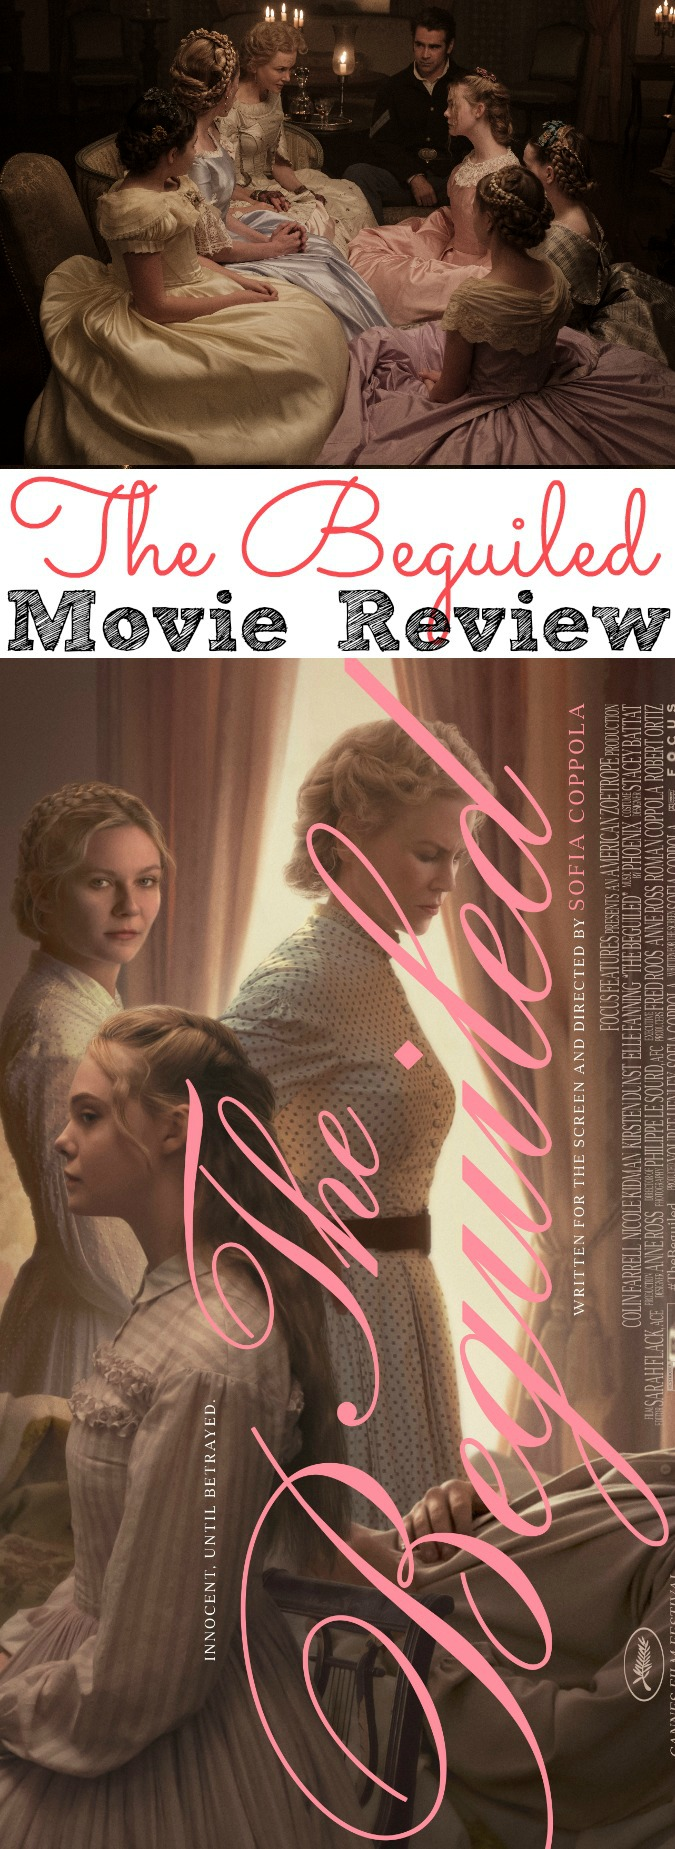 The Beguild Movie Review